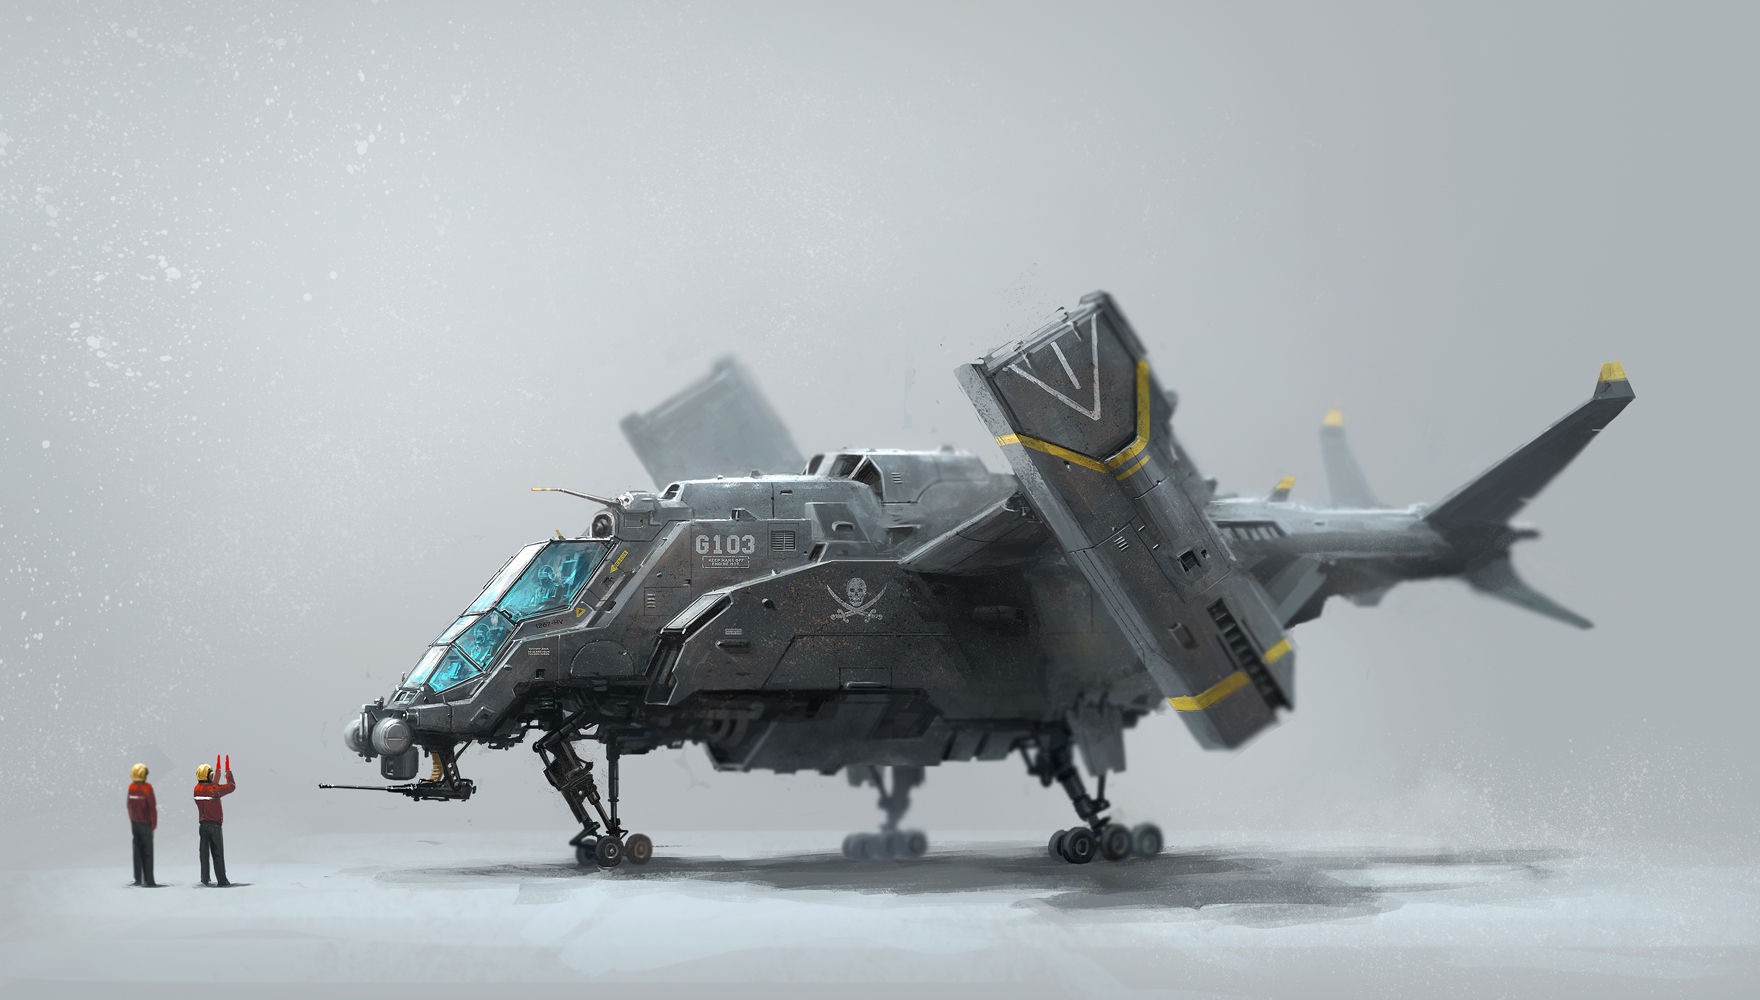 G103 aircraft by alex ichim on deviantart for Porte helicoptere